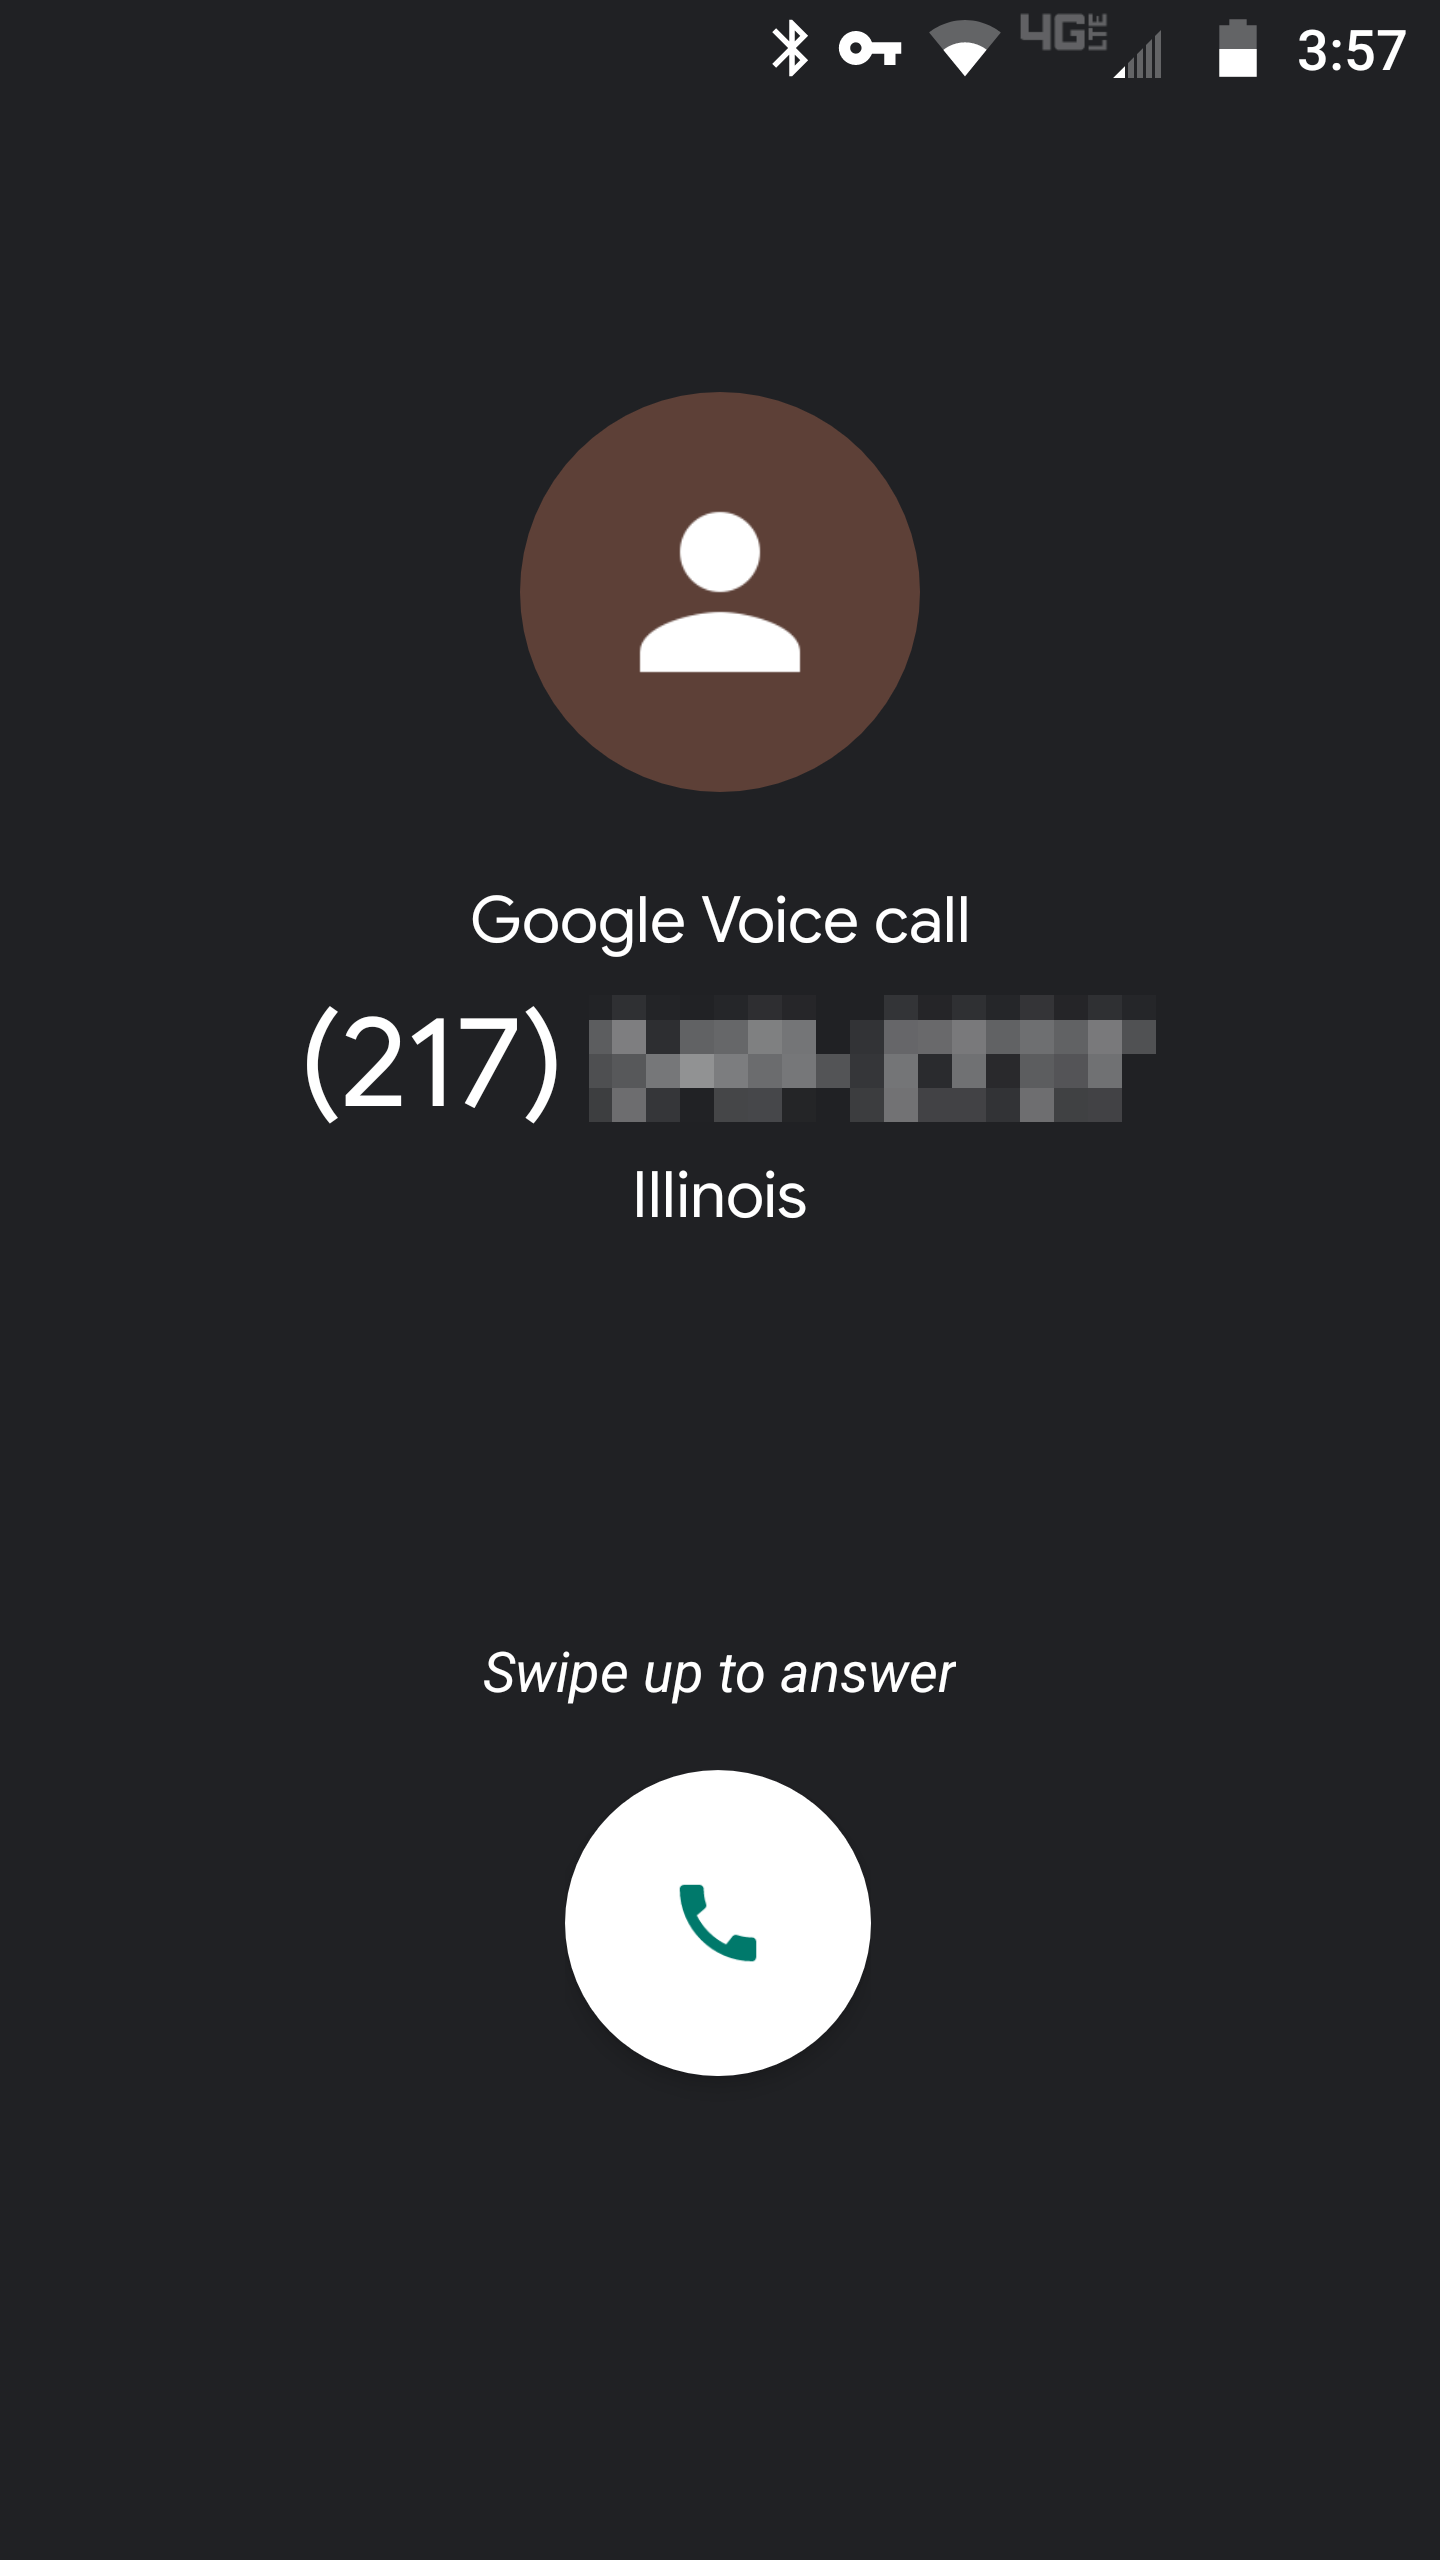 How can I instantly know if an incoming call is to my iPhone